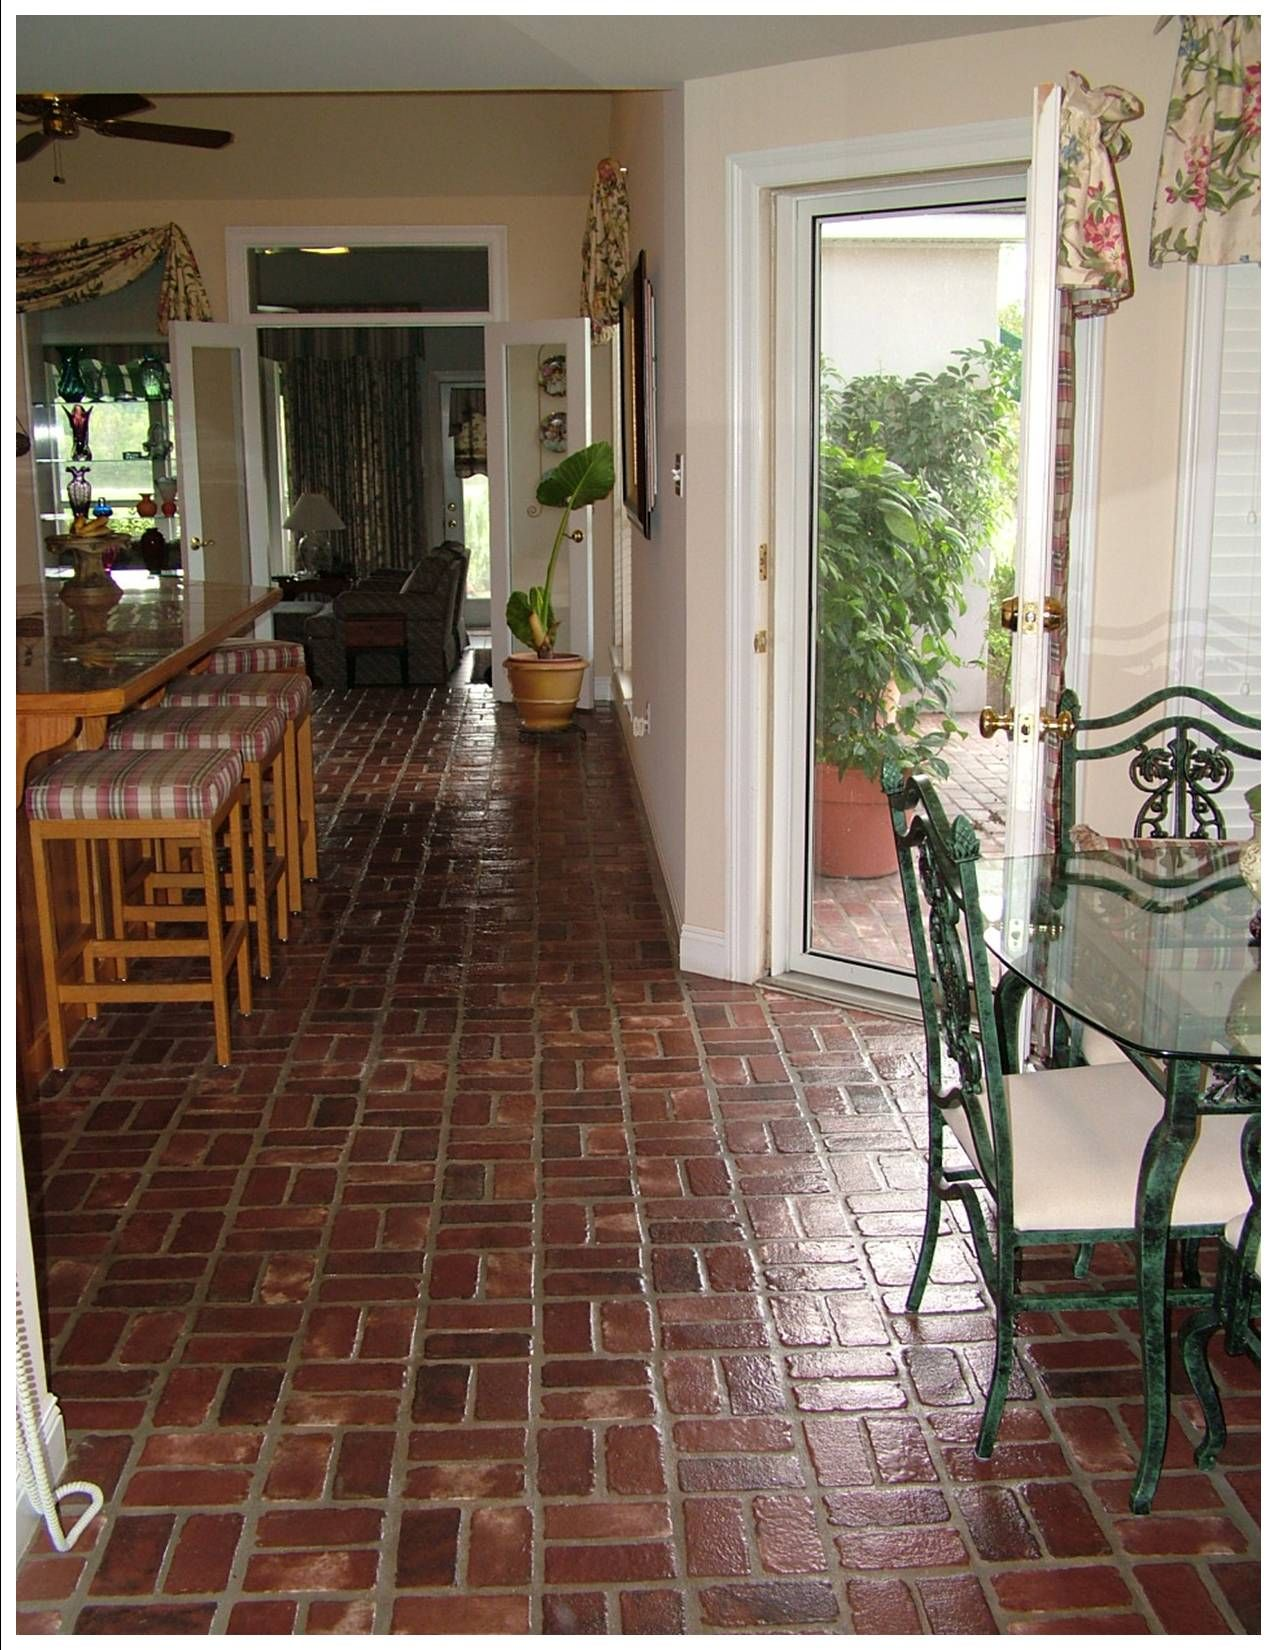 Amazing Amazing Interior Brick Pavers #6 Interior Brick Floor Pavers